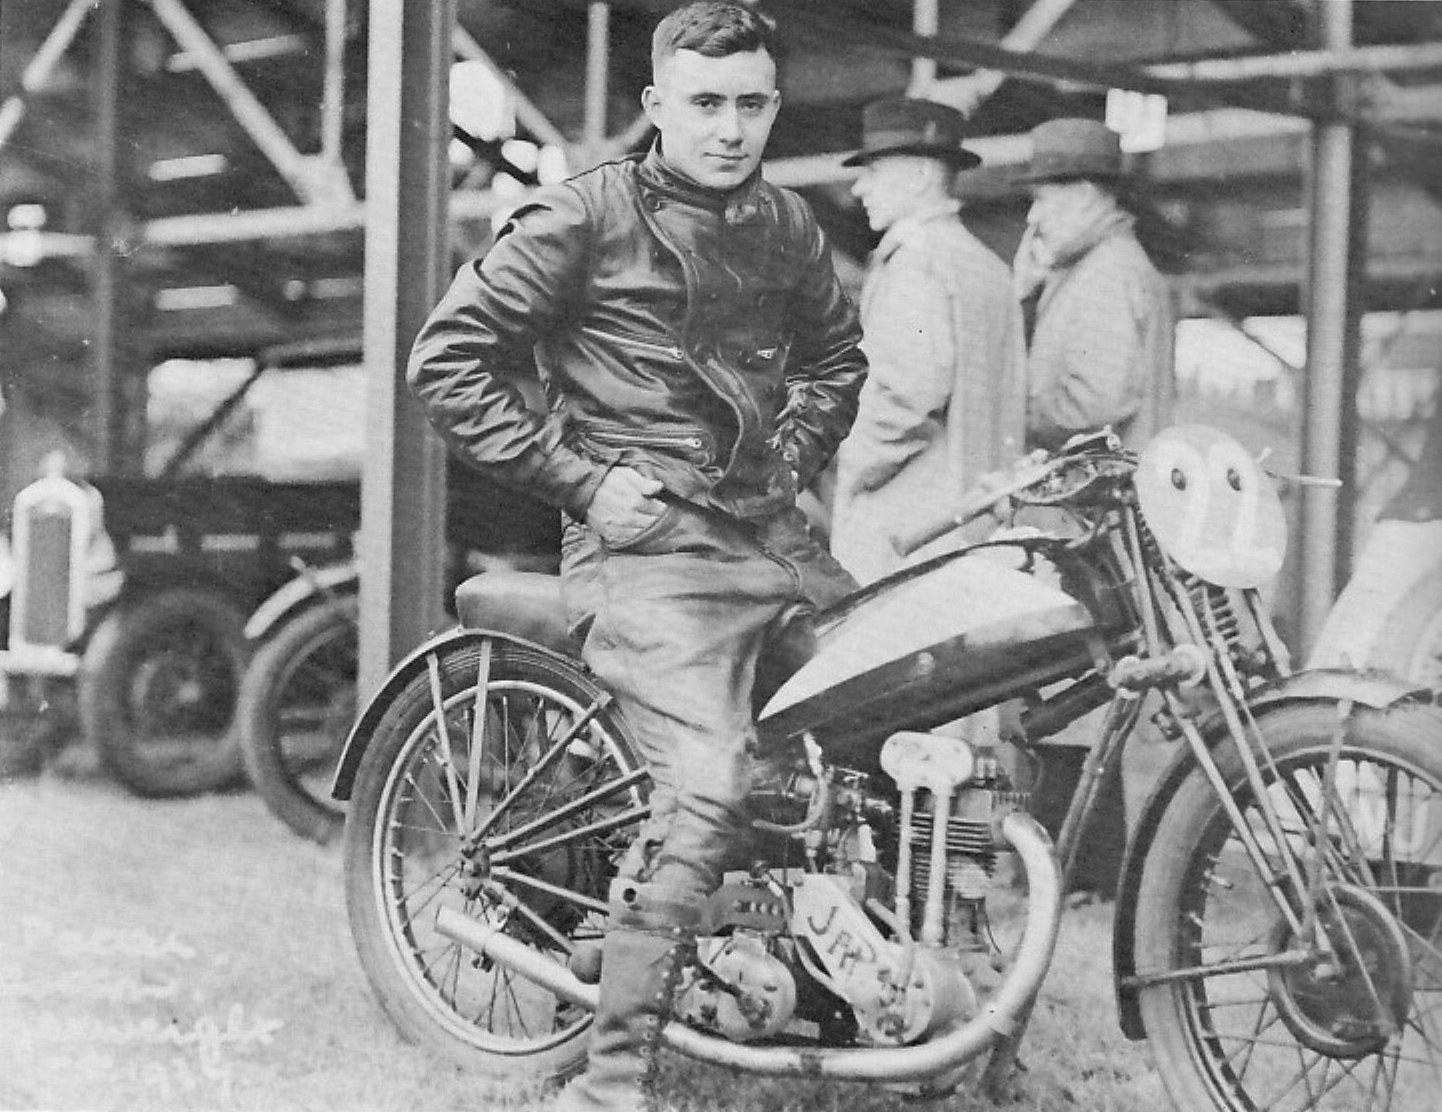 George Pepper's big international break came in 1937 when he participated in the Isle of Man Tourist Trophy races. Although he failed to finish any of his races, he found steady work riding Speedway in England soon after.